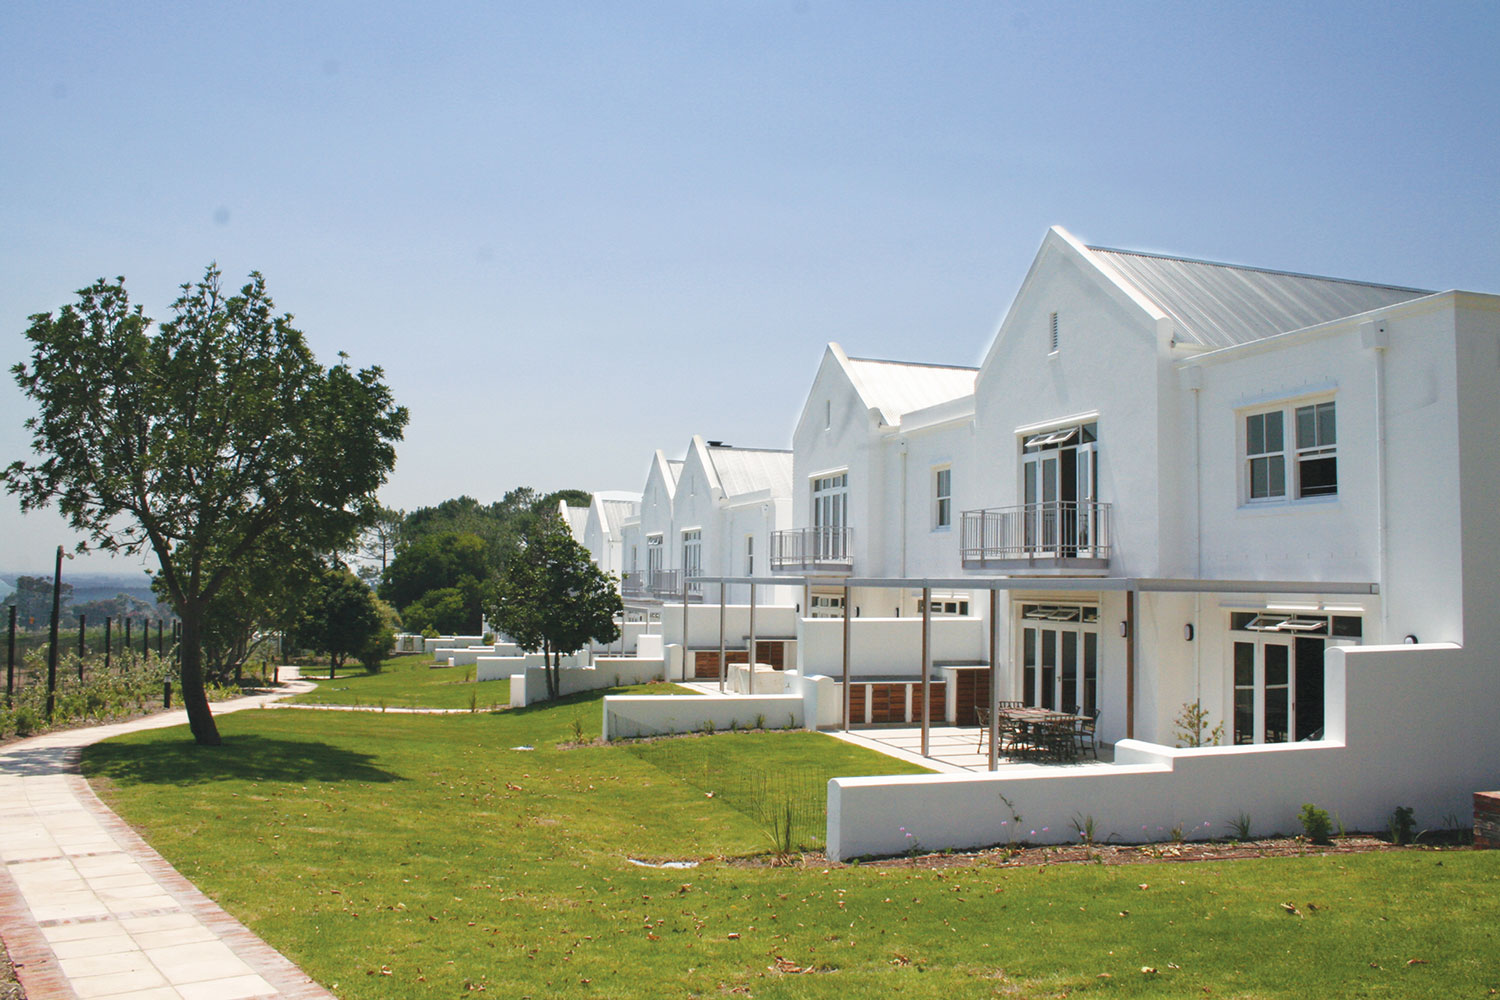 New Court at Steenberg - Empty Nesters Downsizing without compromise